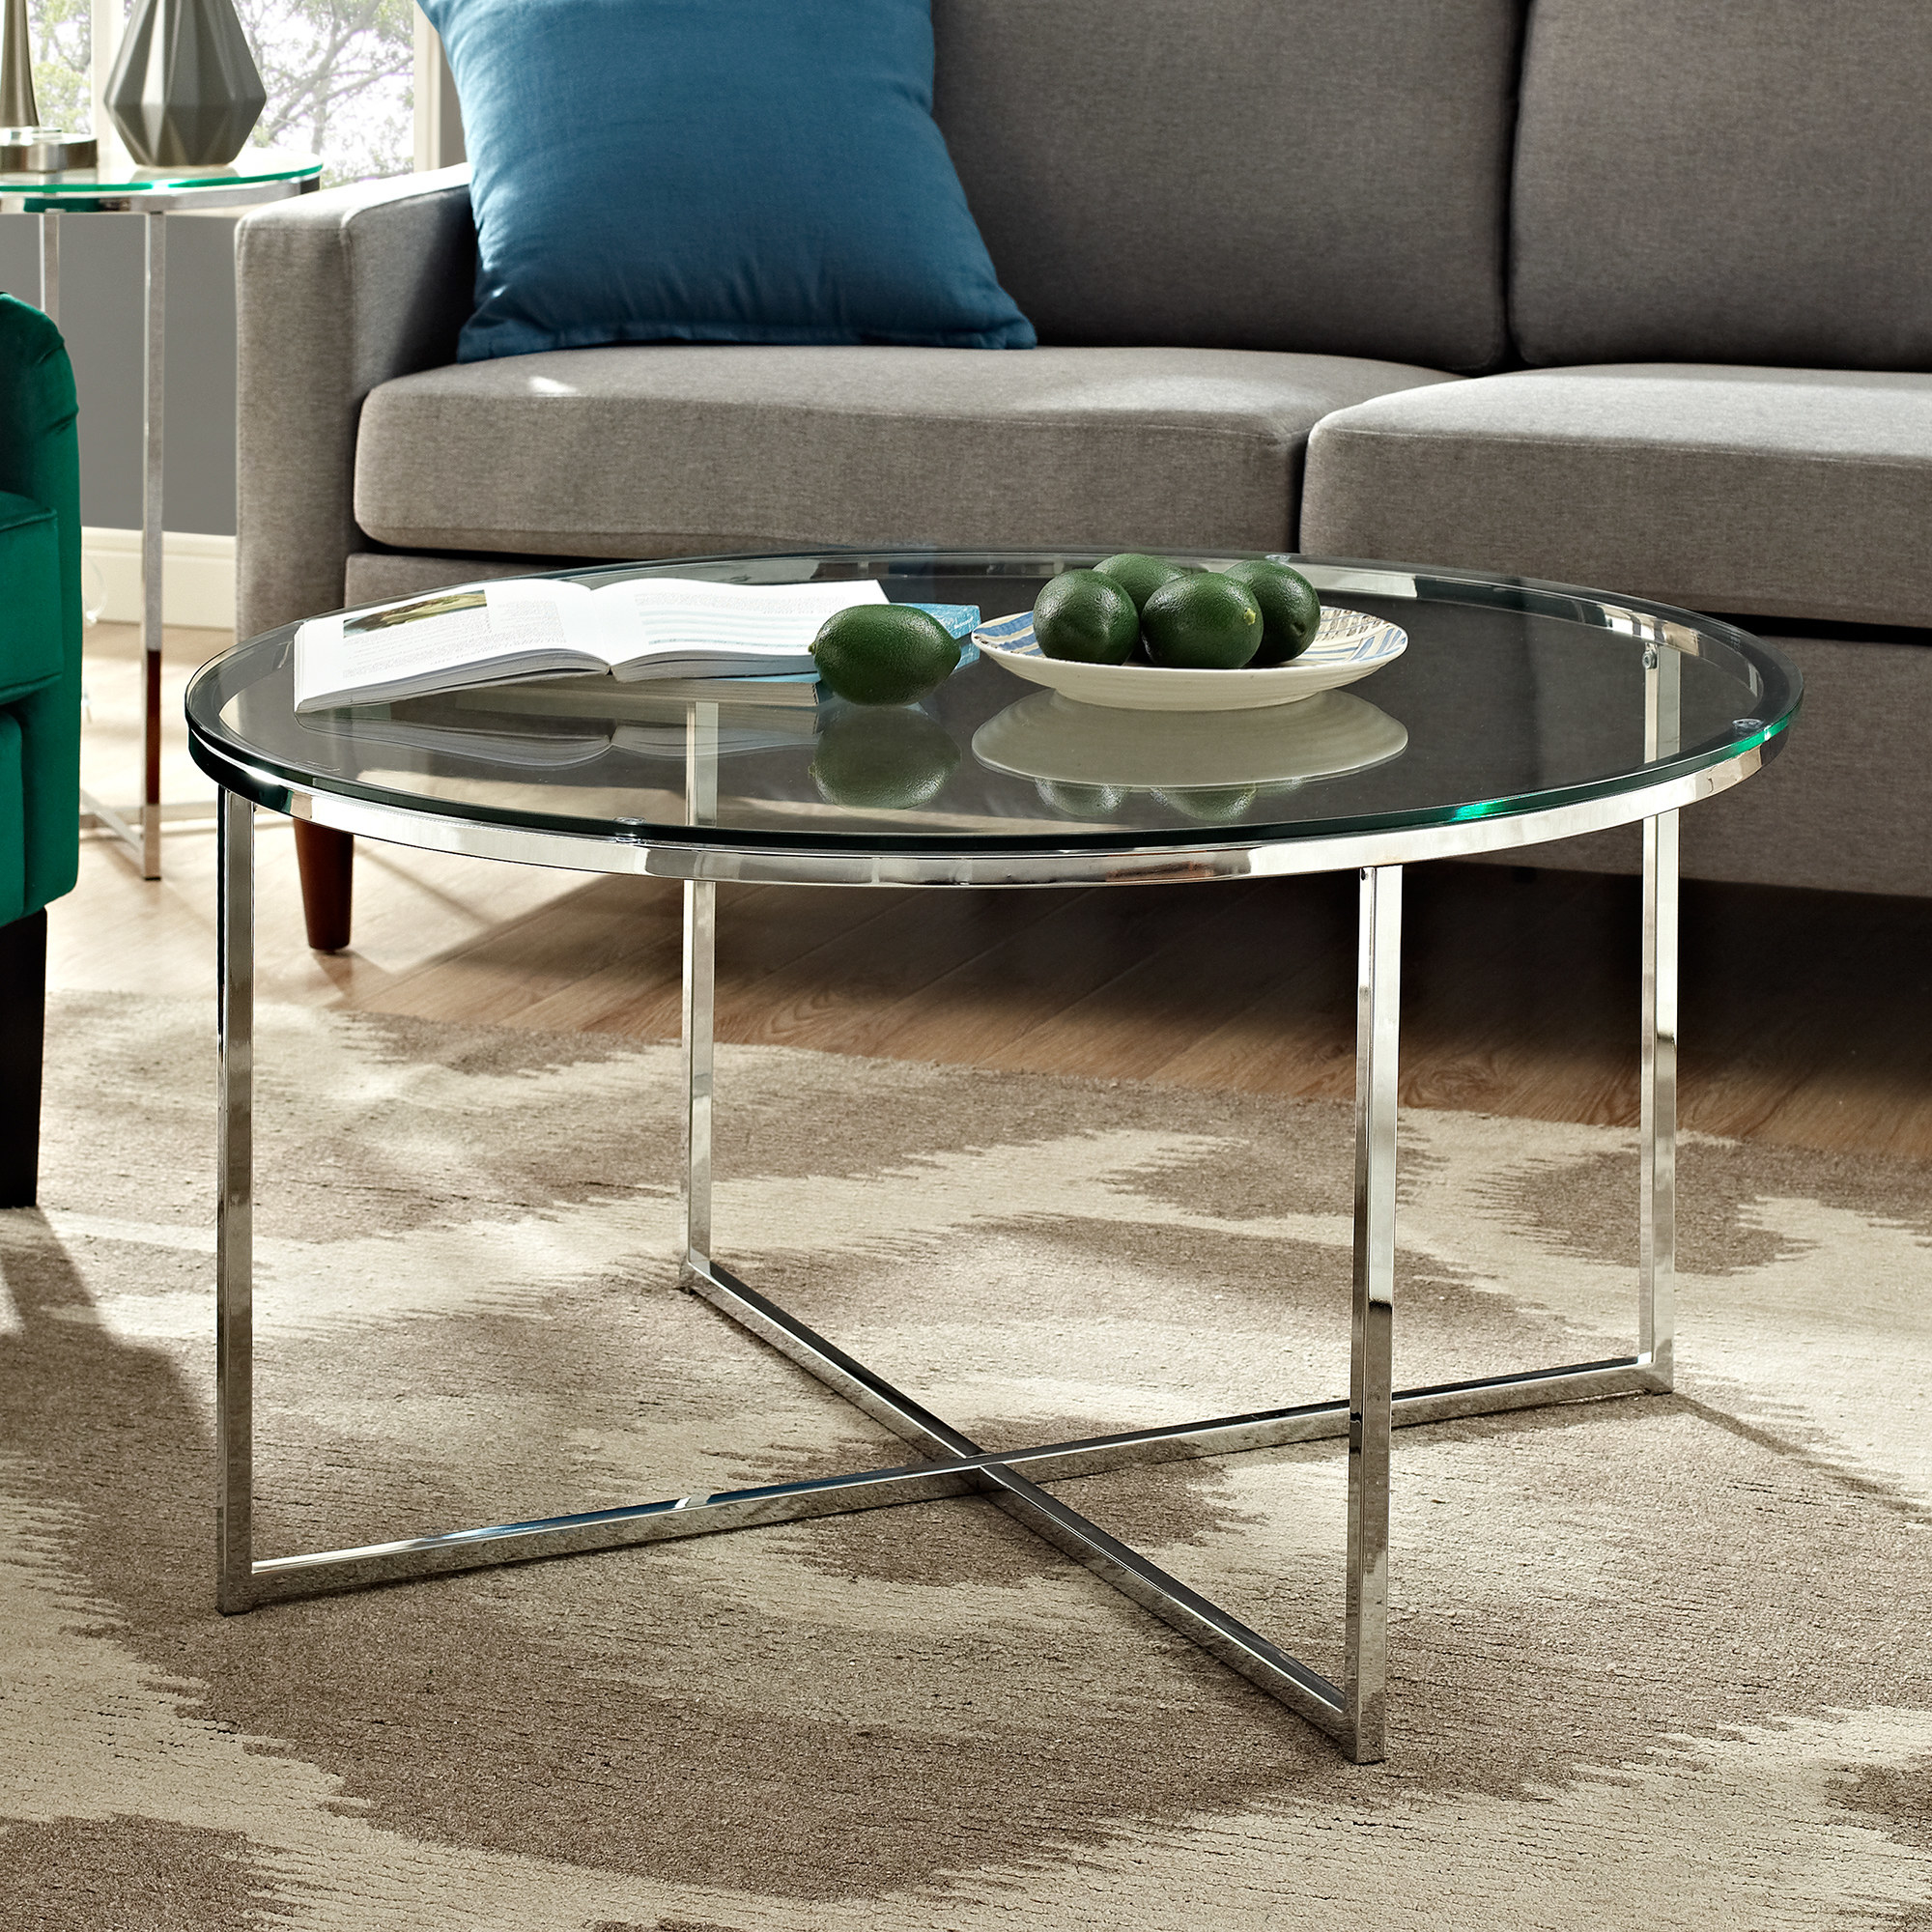 the chrome and glass rounded coffee table